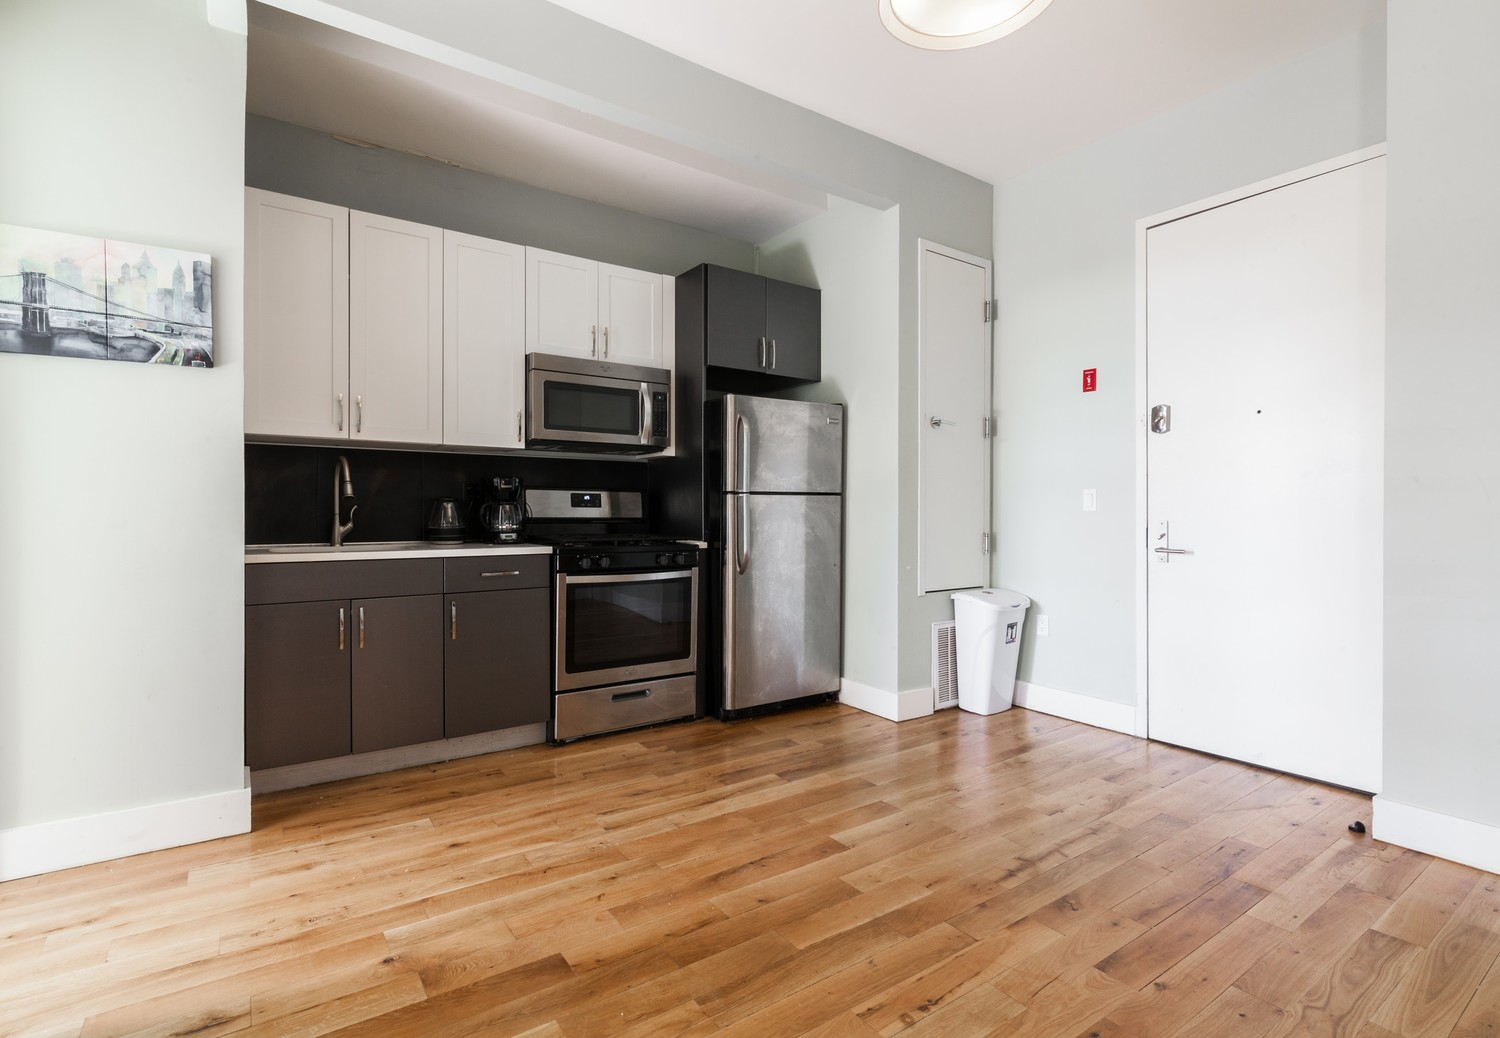 Private Room in North Central Brooklyn Shared Apt. + Fully Furnished, Utilities, and WiFi Included.